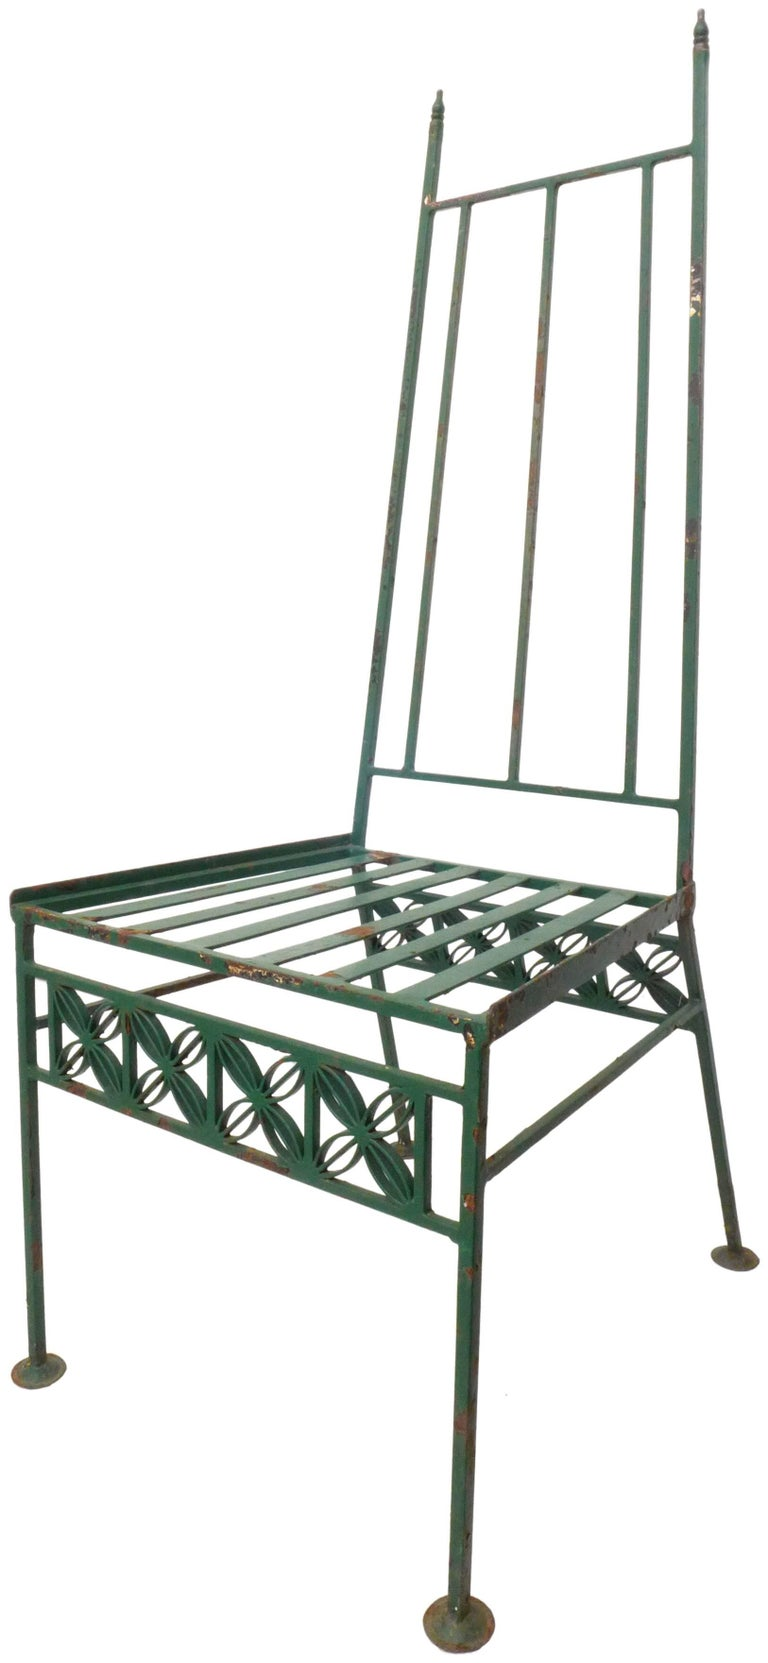 Mid-20th Century Wrought Iron and Glass Dining Set For Sale